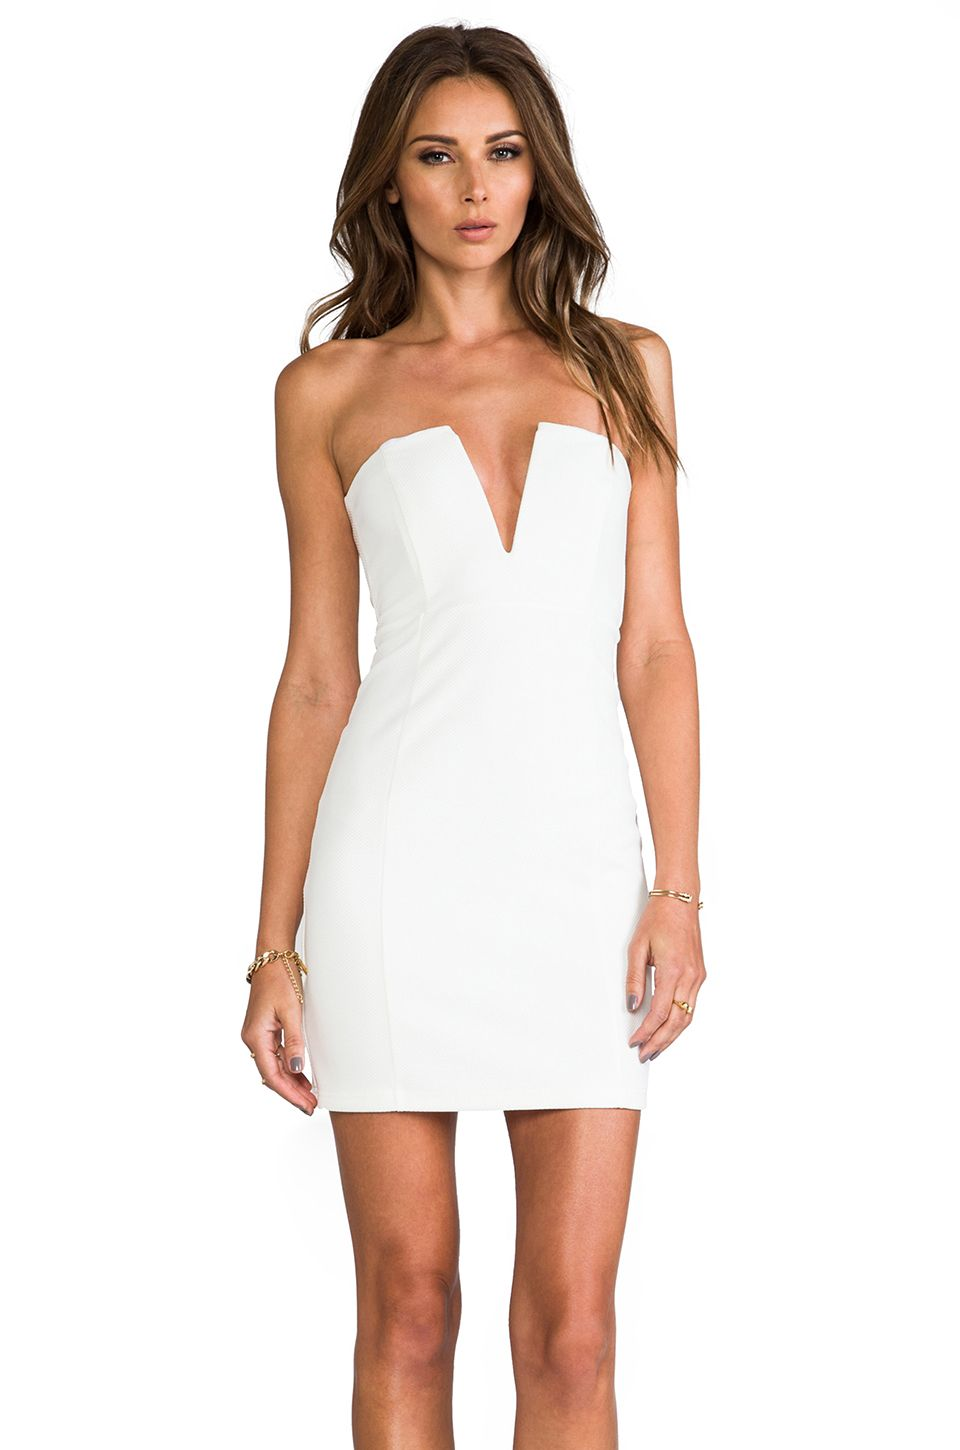 Nookie rubix vfront bustier dress in white from revolveclothing